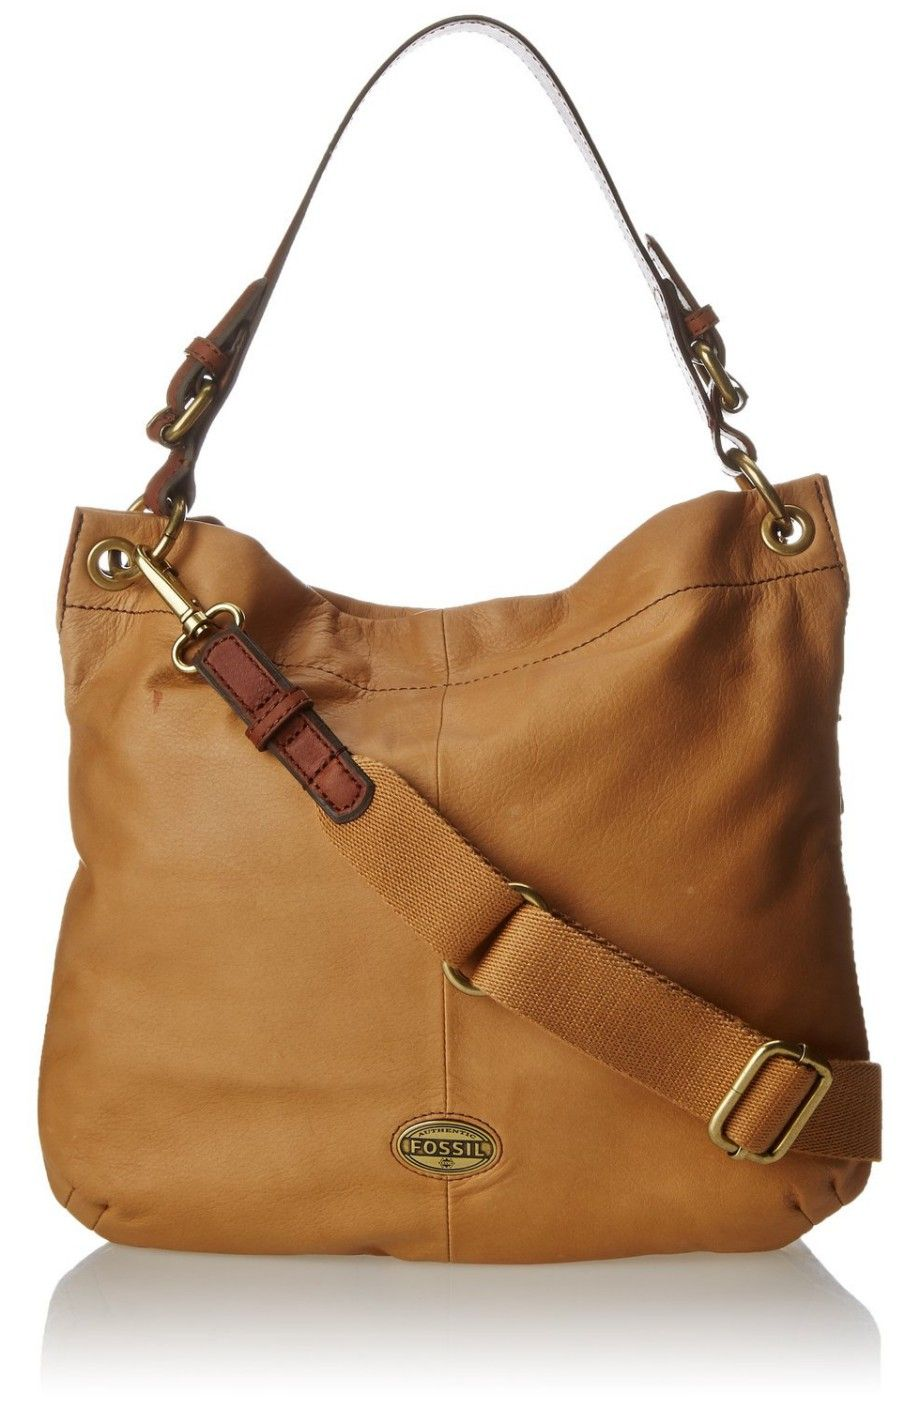 1c3c4aa24 I'd like a medium sized purse.. hoping this wouldn't be the size of a  duffle bag